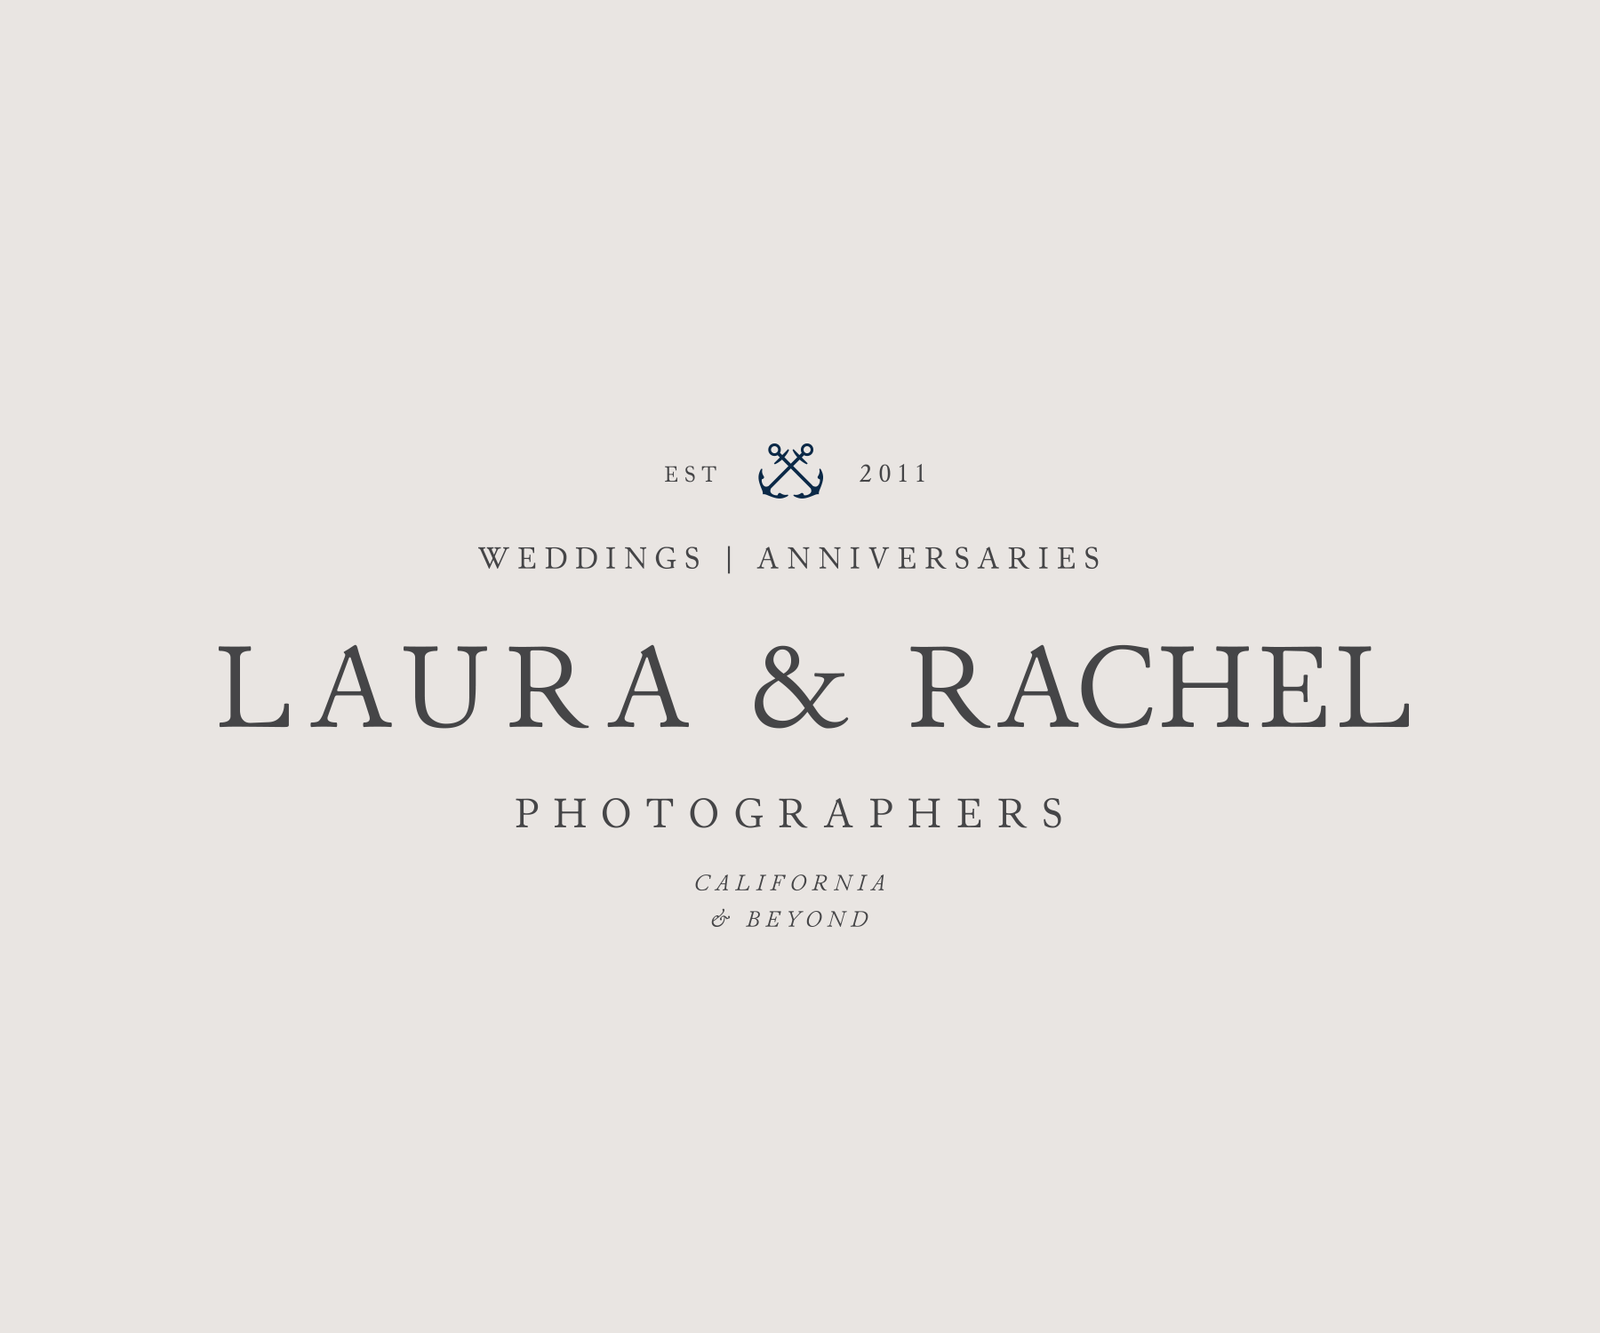 Nautical logo design for wedding photographers